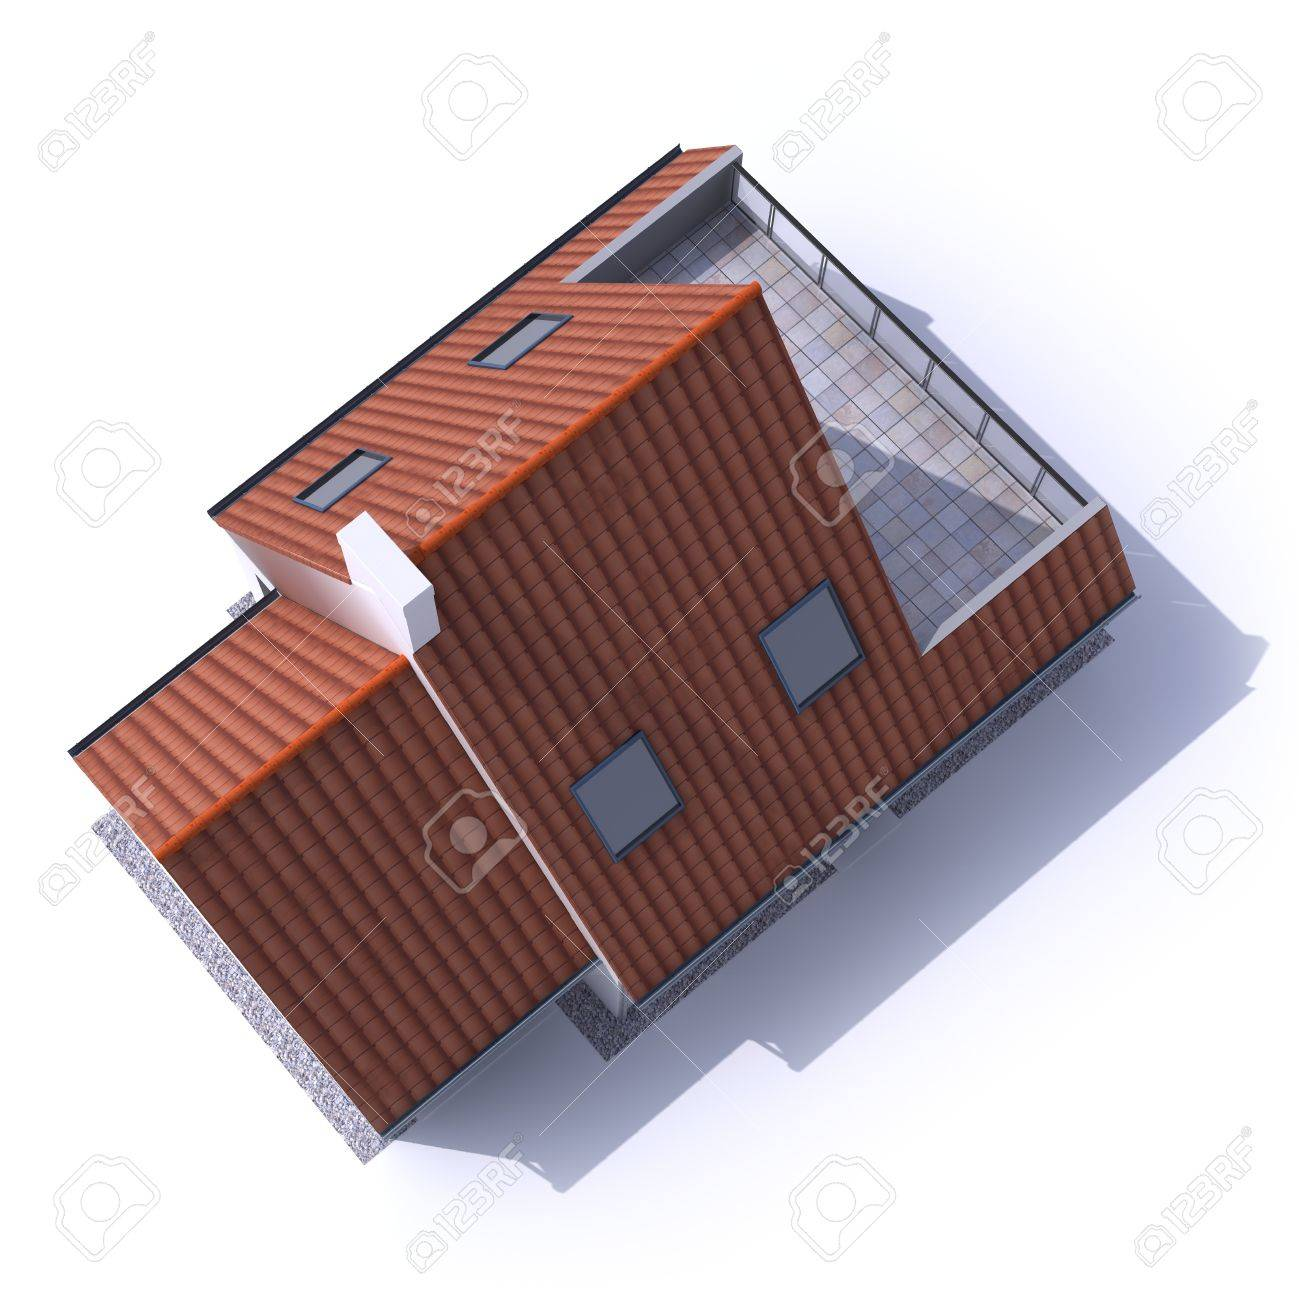 3D architecture model of a house, aerial view Stock Photo - 13253561